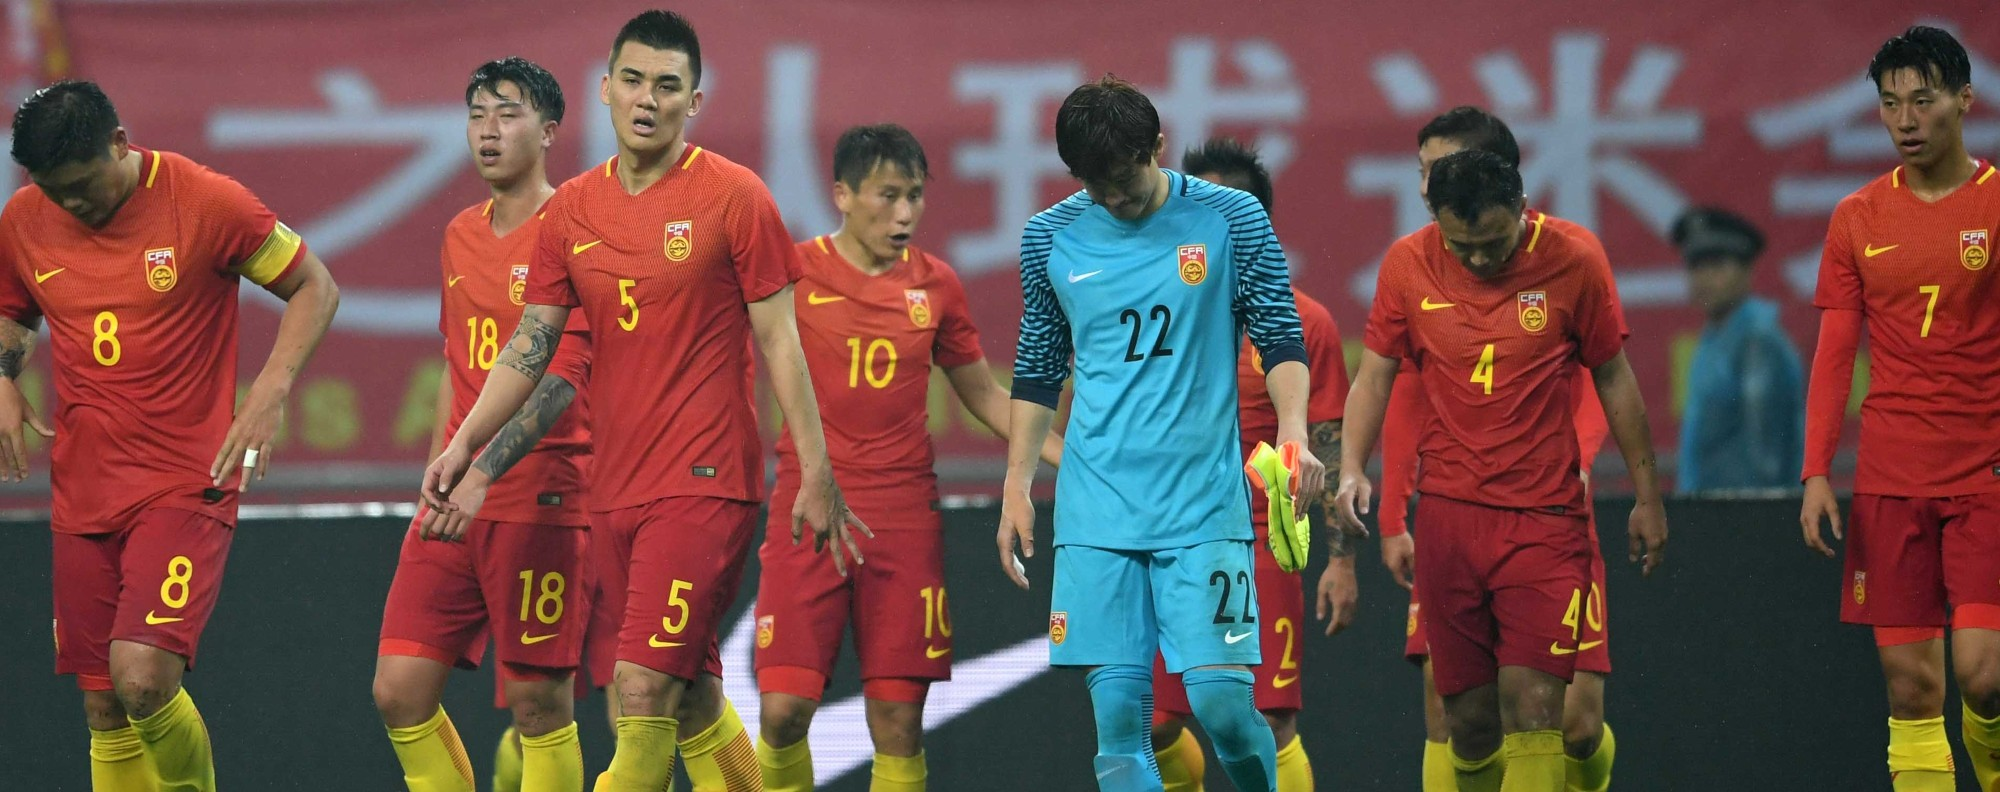 Chinese players after their 2-0 loss to Iceland in 2017. Picture: Xinhua